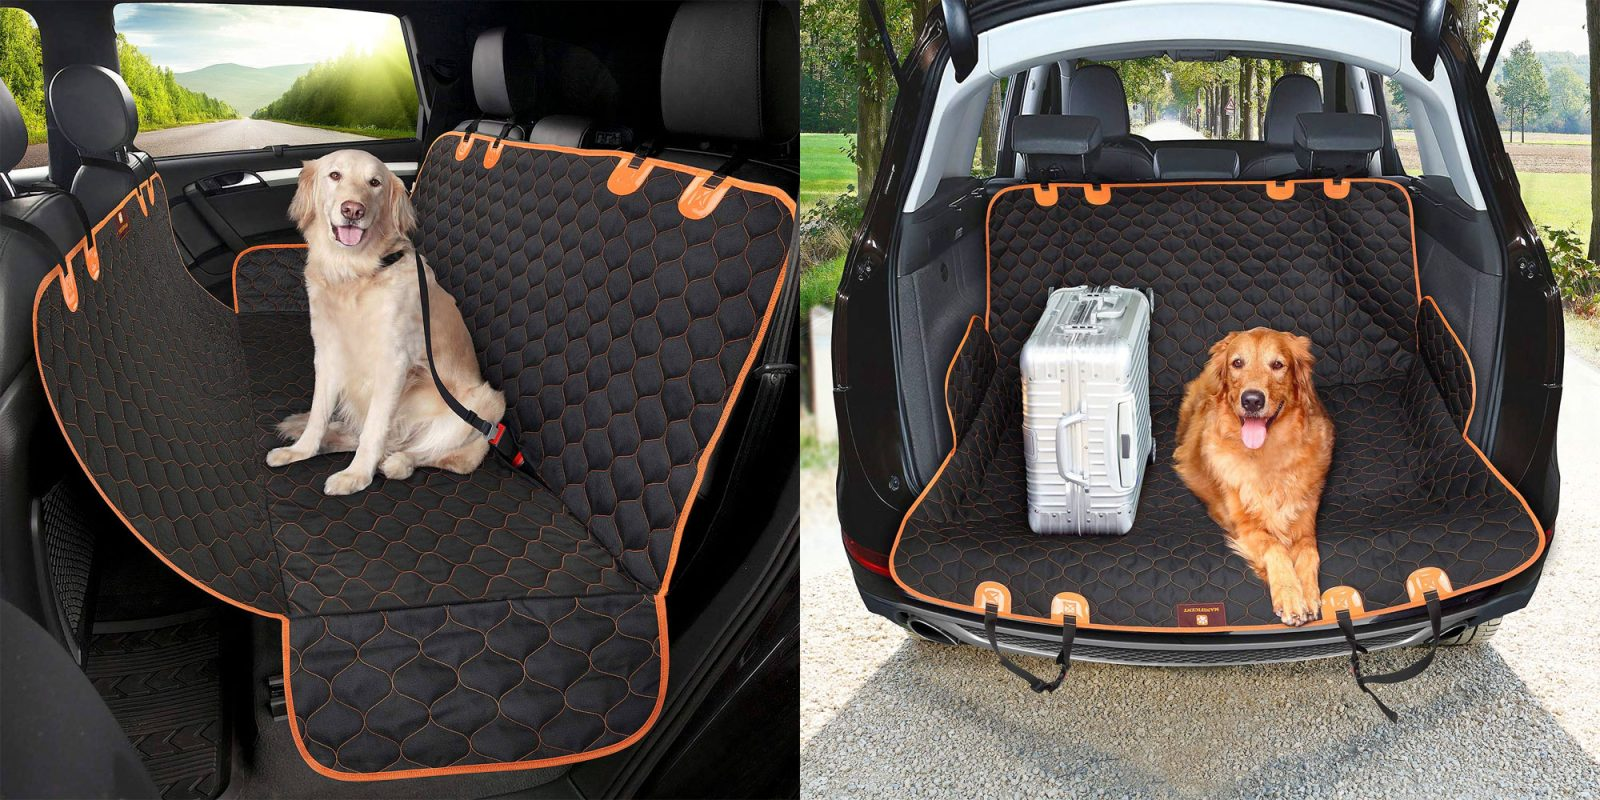 Make cleaning up after your pet in the car a breeze w/ this #1 best